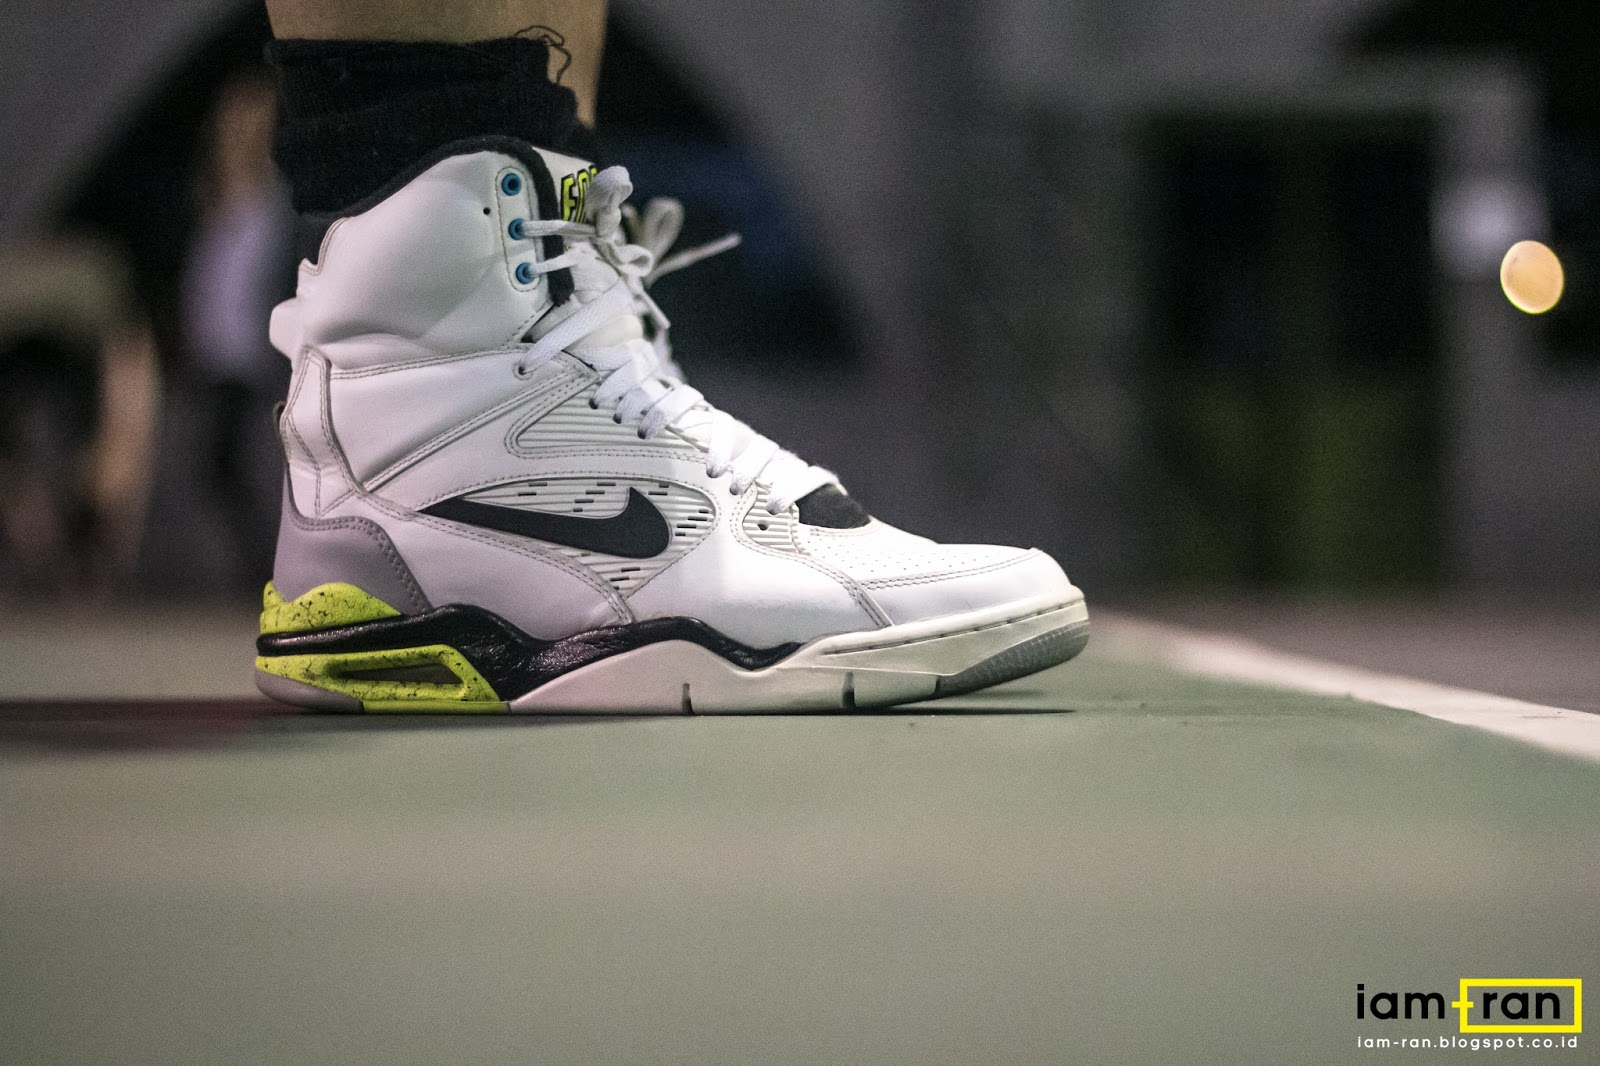 646a2f5812d3a8 IAM-RAN  ON FEET   Ferry - Nike Air Command Force